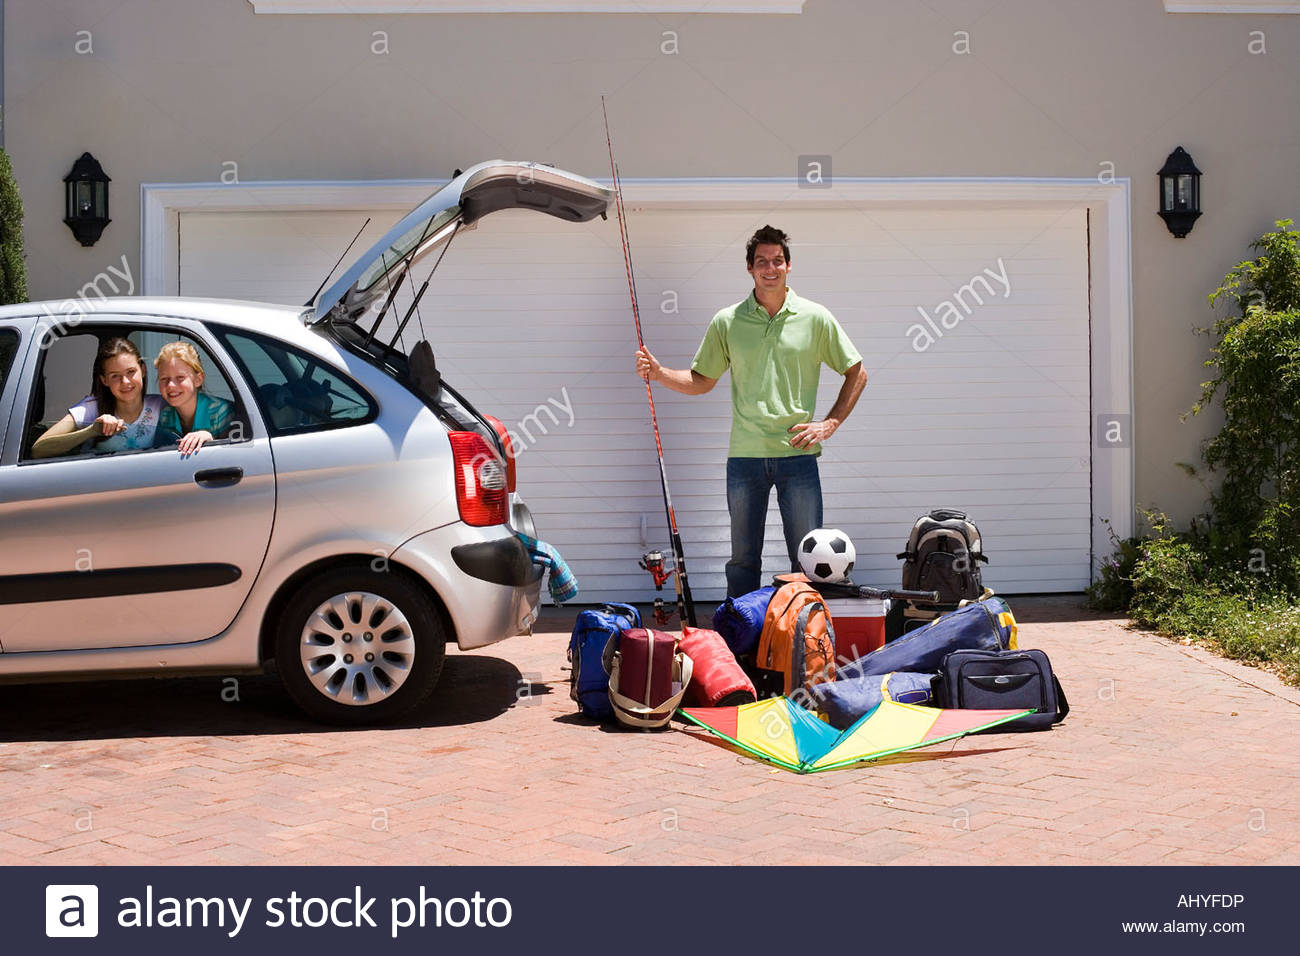 Father Loading Camping Equipment Into Car Boot On Driveway Holding Fishing Rod Children Sitting In Parked Smiling